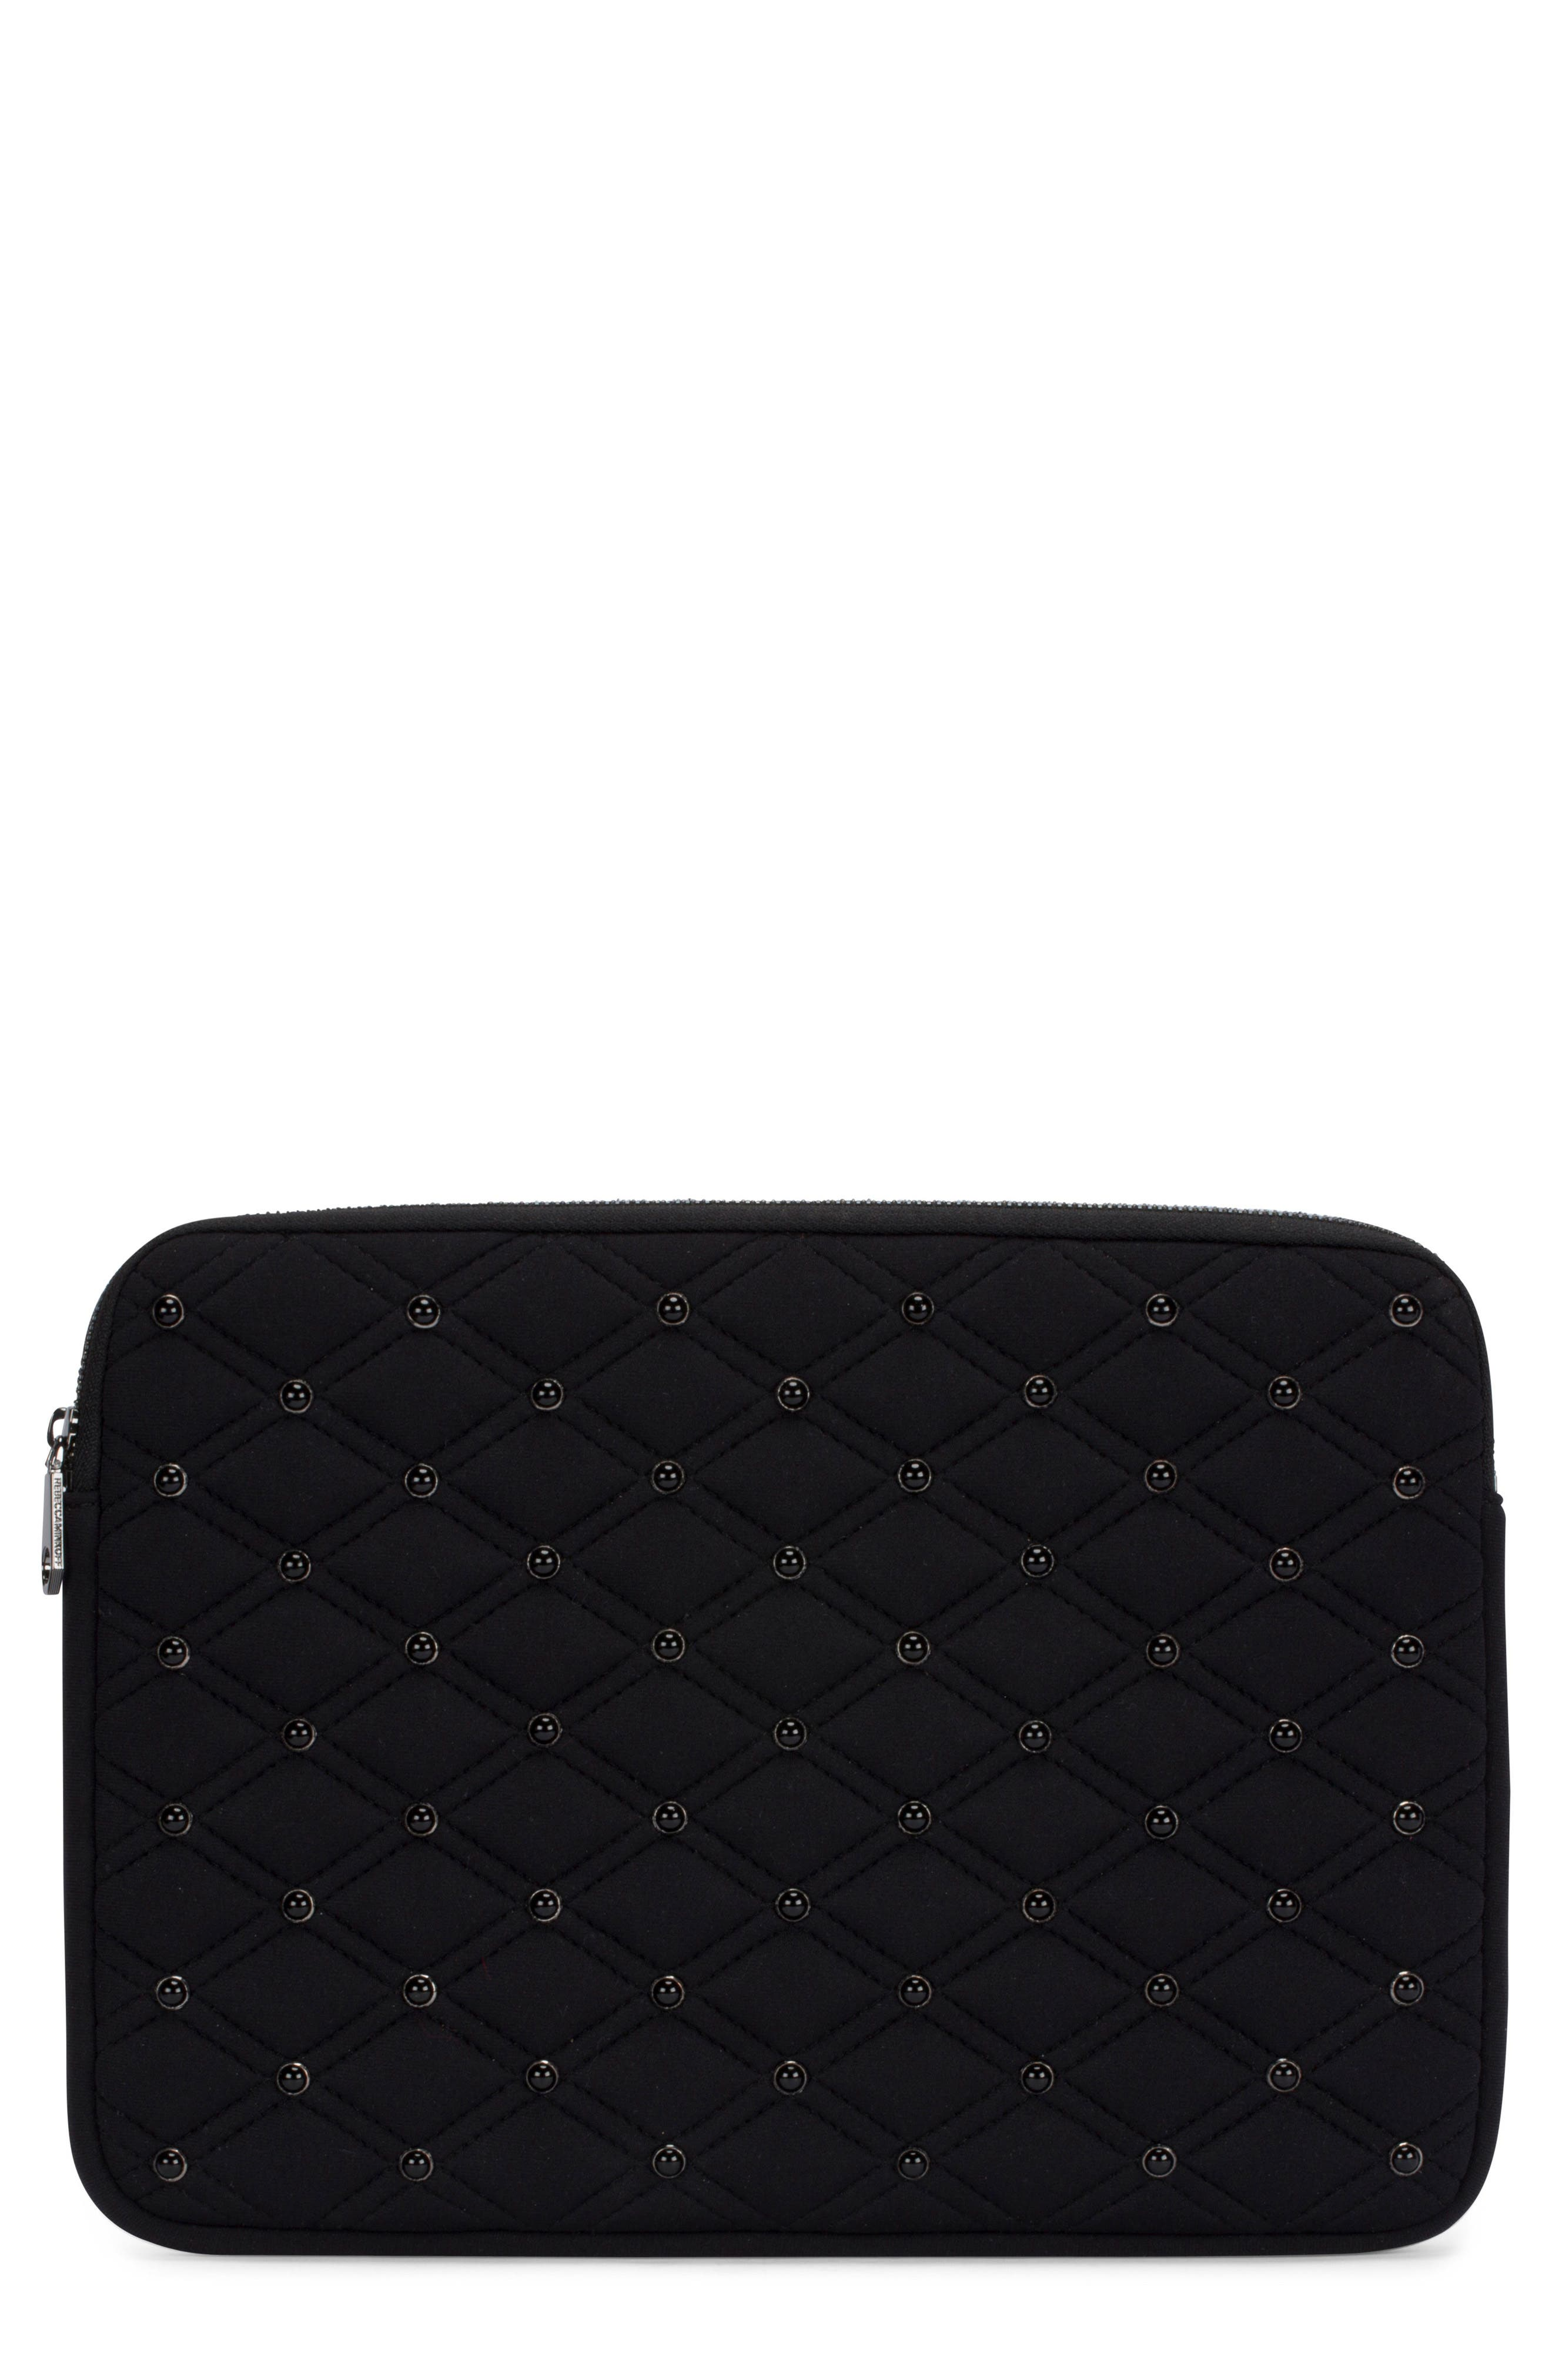 Quilted Stud Laptop Case,                         Main,                         color, Black/ Black Pearl Studs